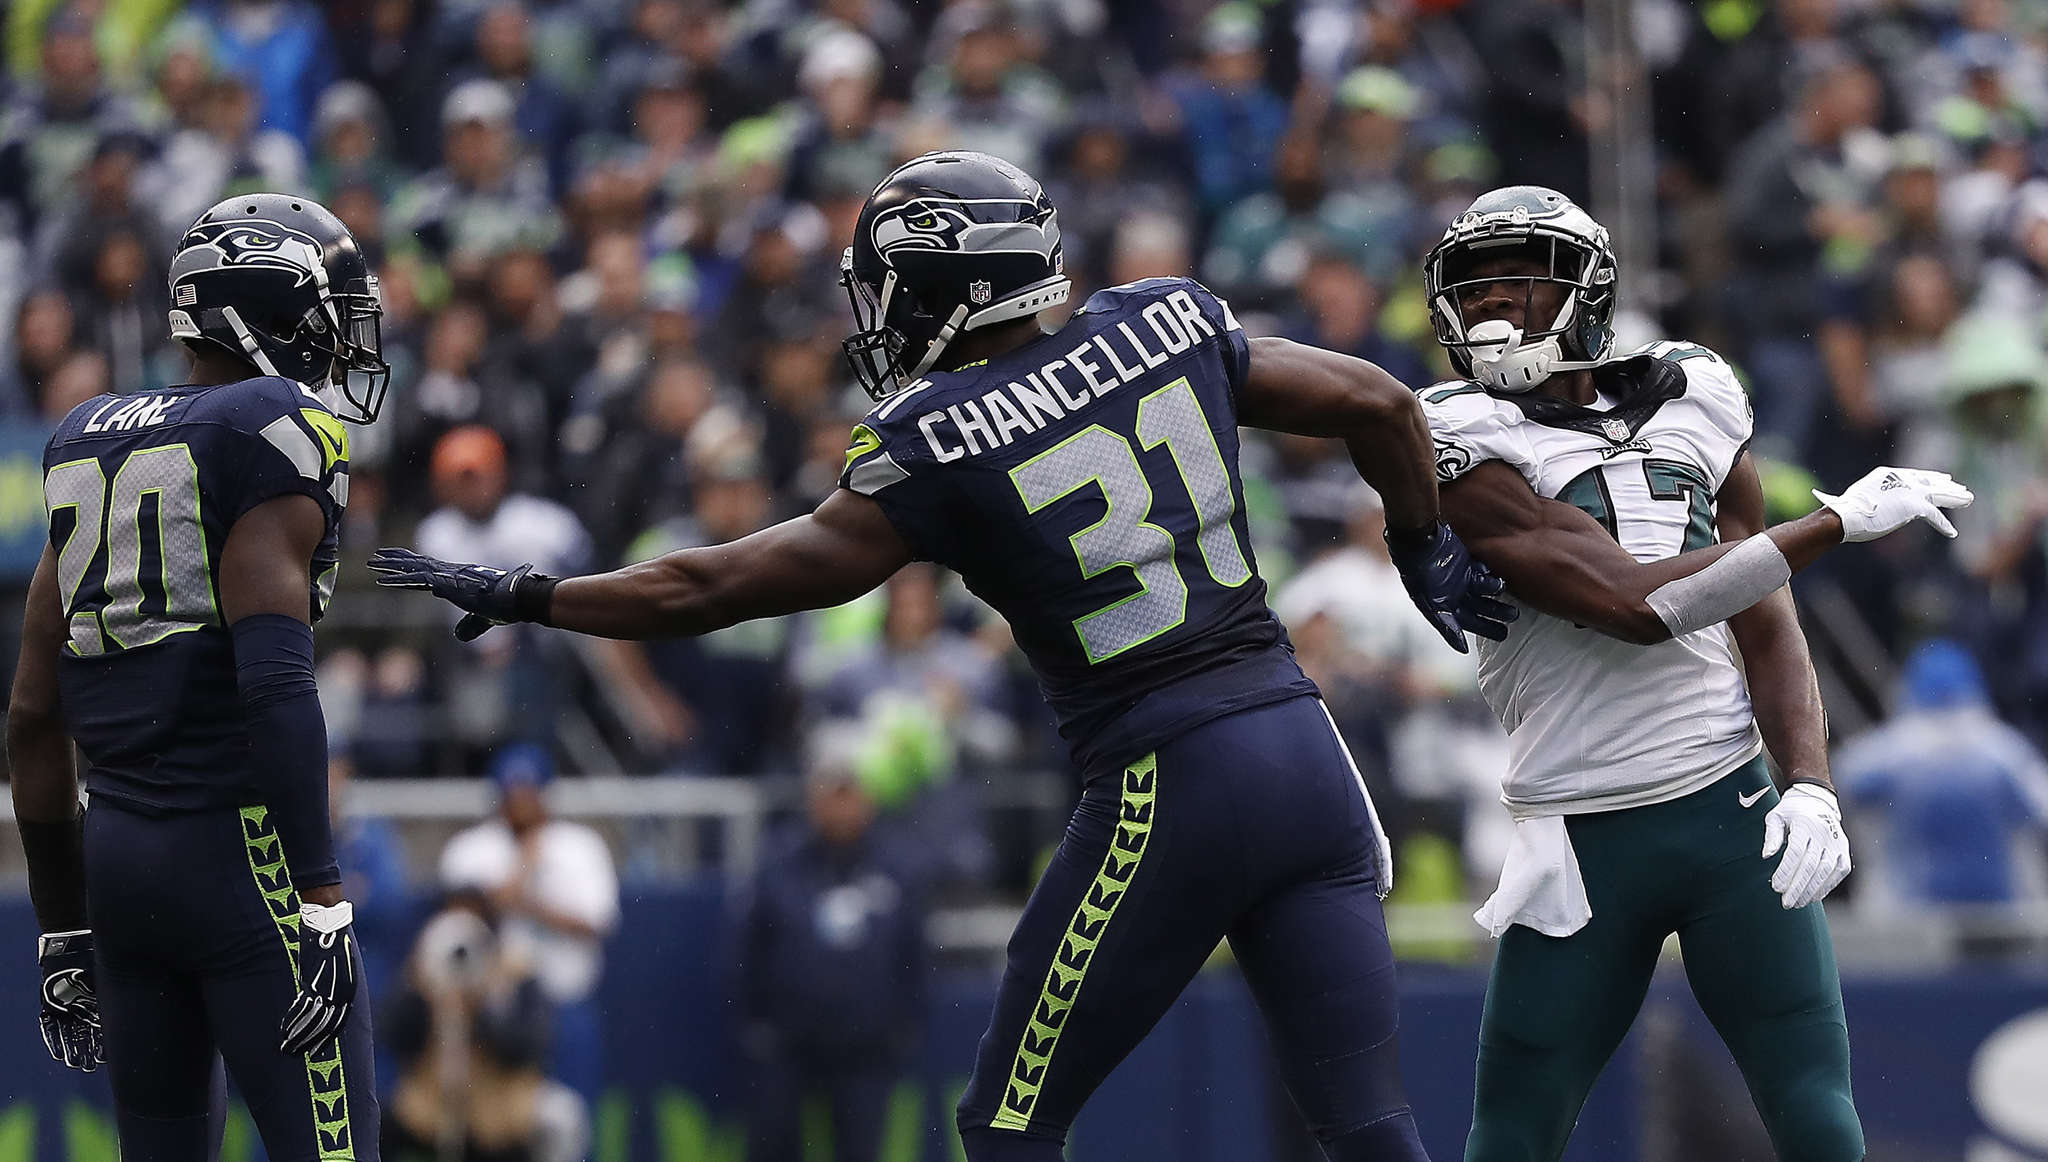 Eagles wide receiver Nelson Agholor takes a swipe at Seahawks safety Kam Chancellor as cornerback Jeremy Lane looks on. DAVID MAIALETTI / Staff Photographer